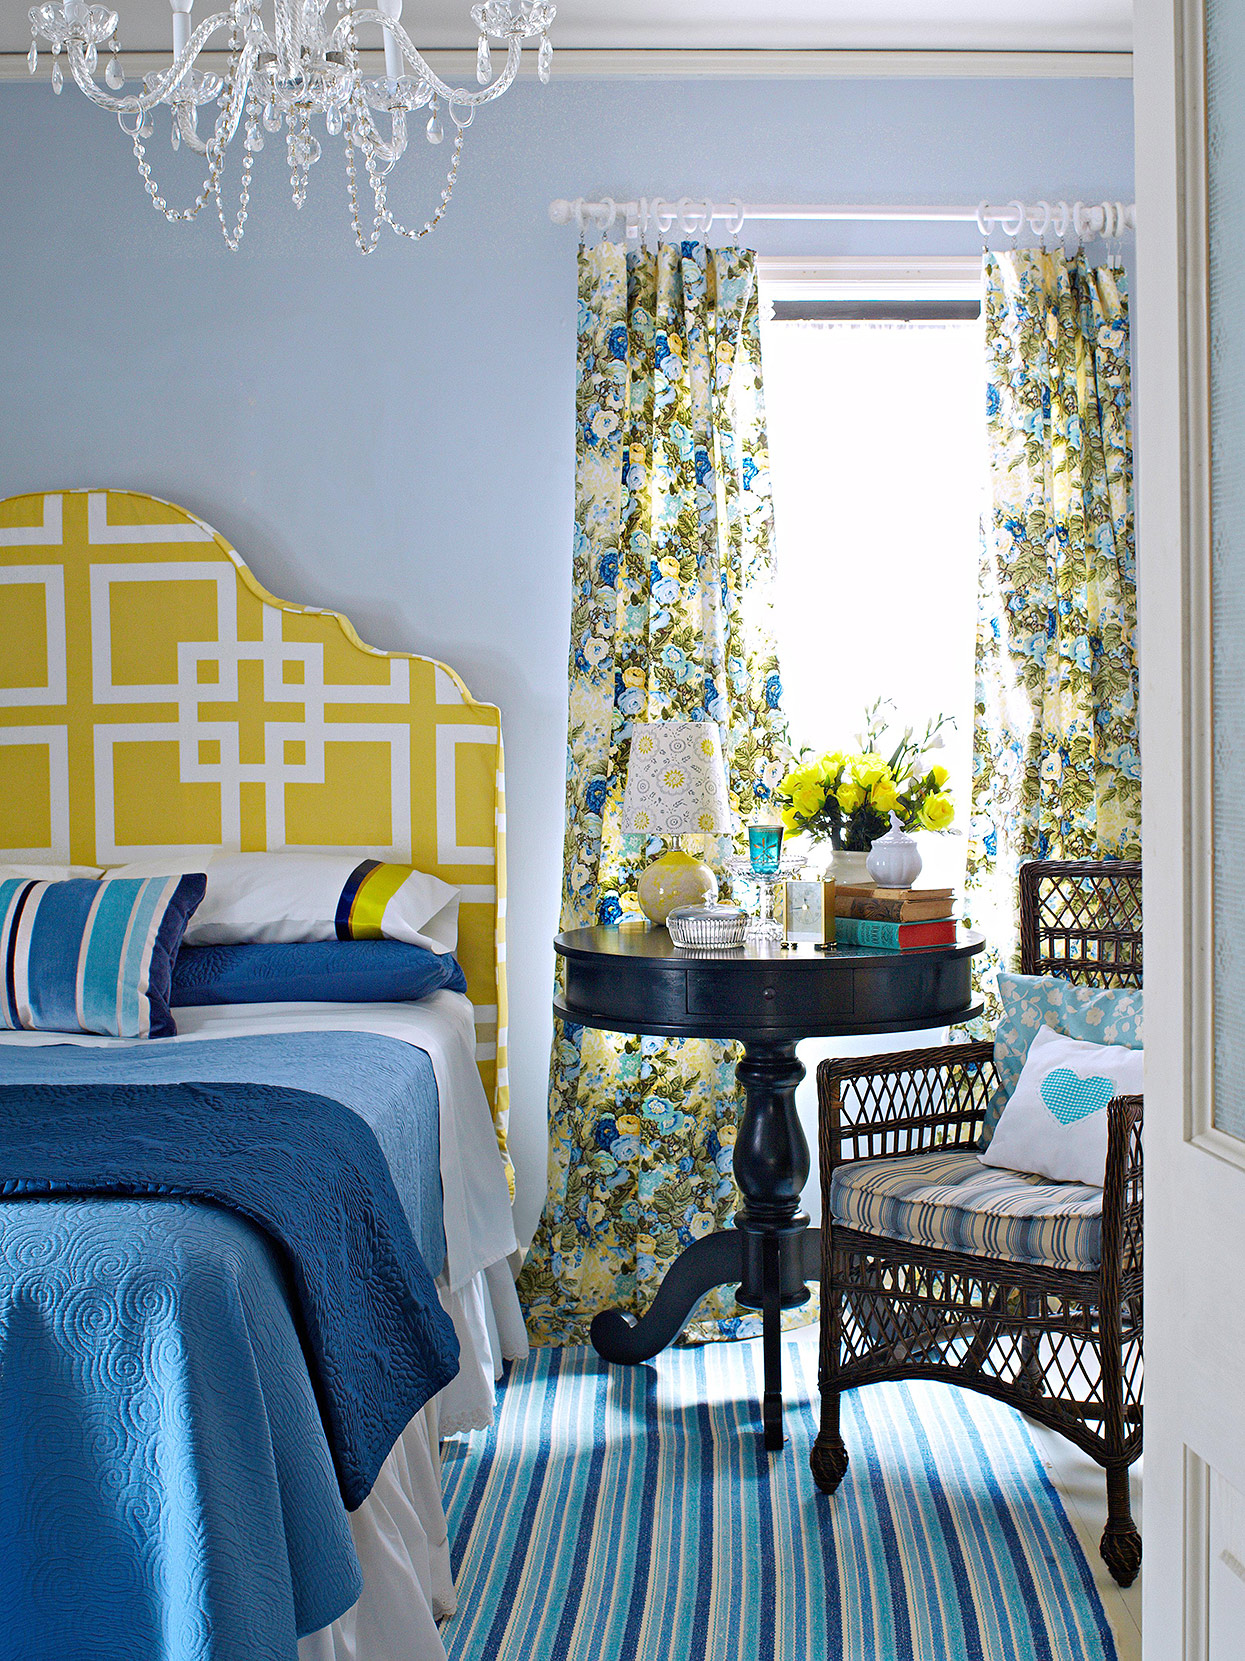 floral panels and yellow geometric headboard in blue room